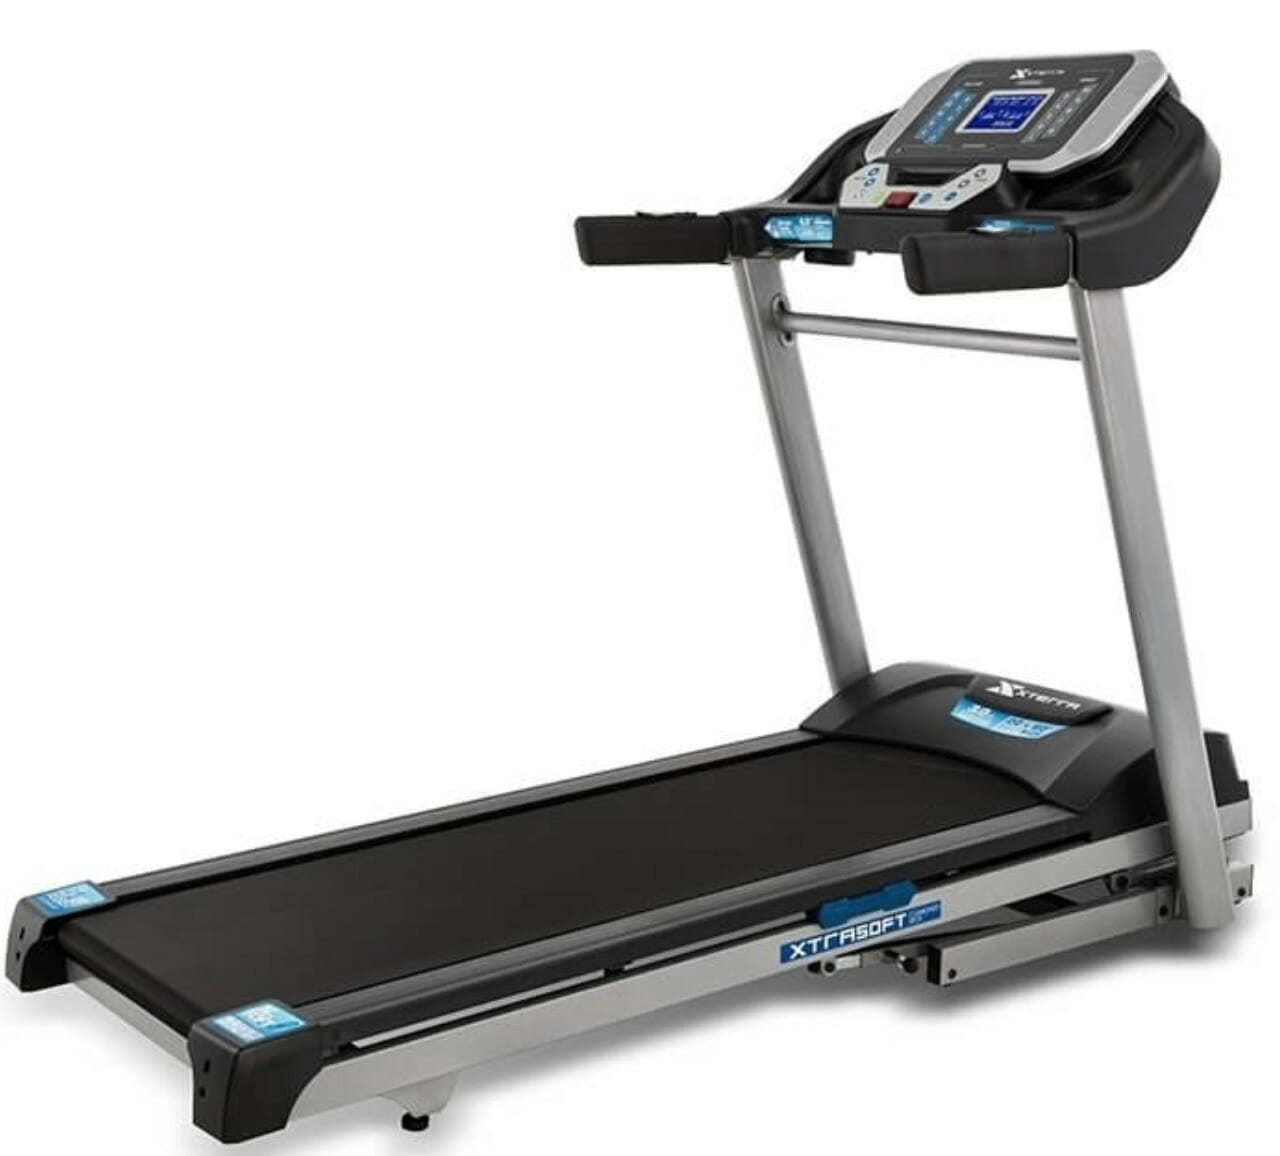 XTERRA TRX3500 treadmill review